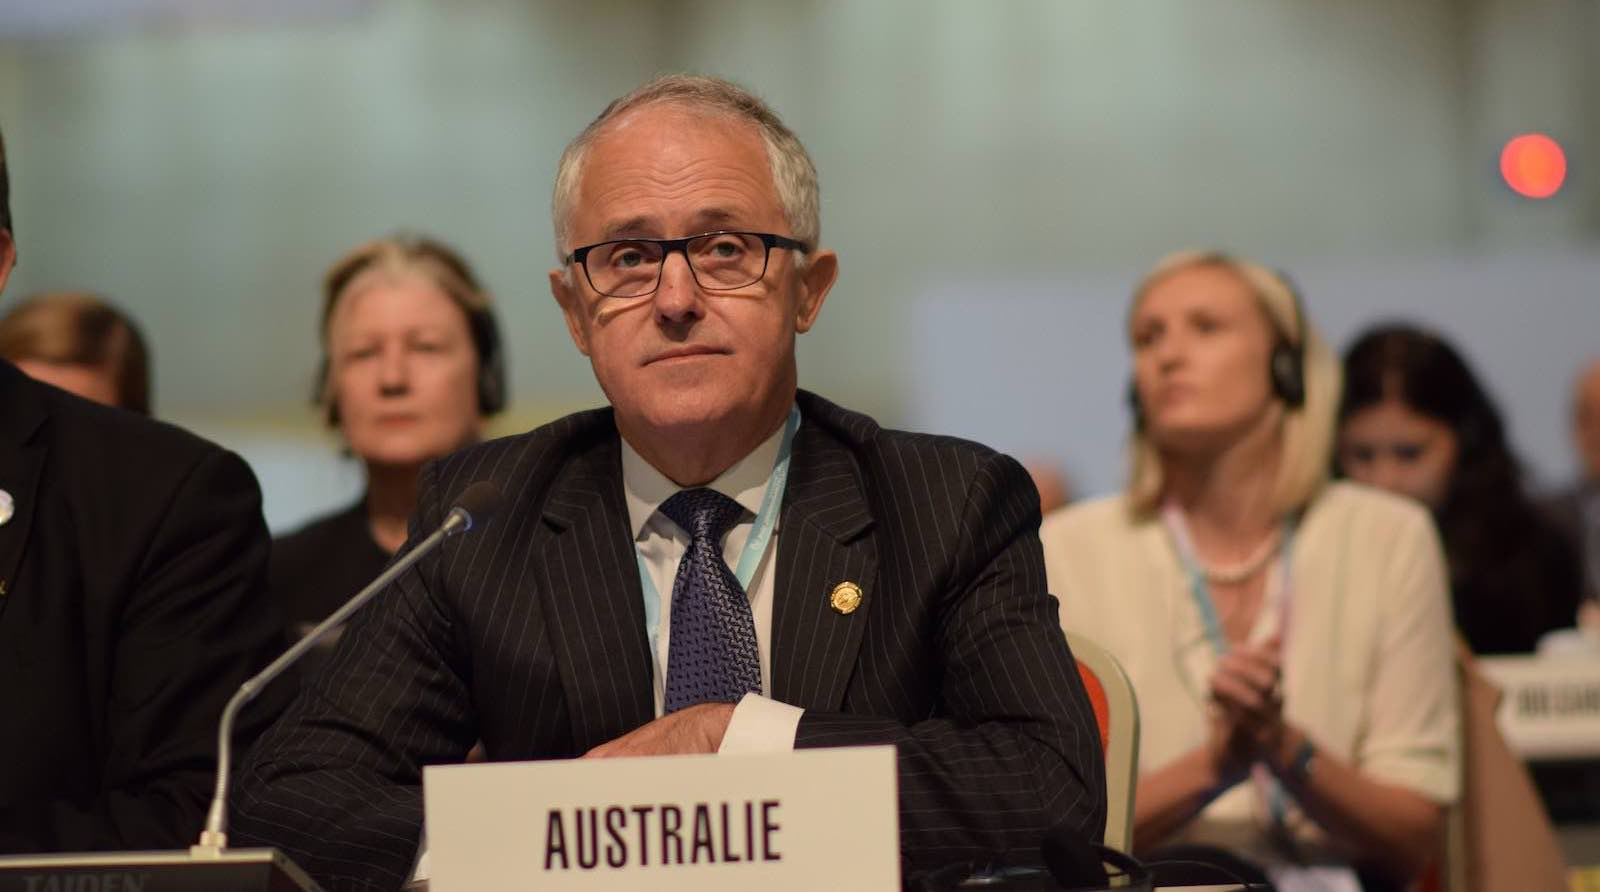 Australian Prime Minister Malcolm Turnbull (Photo: Veni/Flickr)